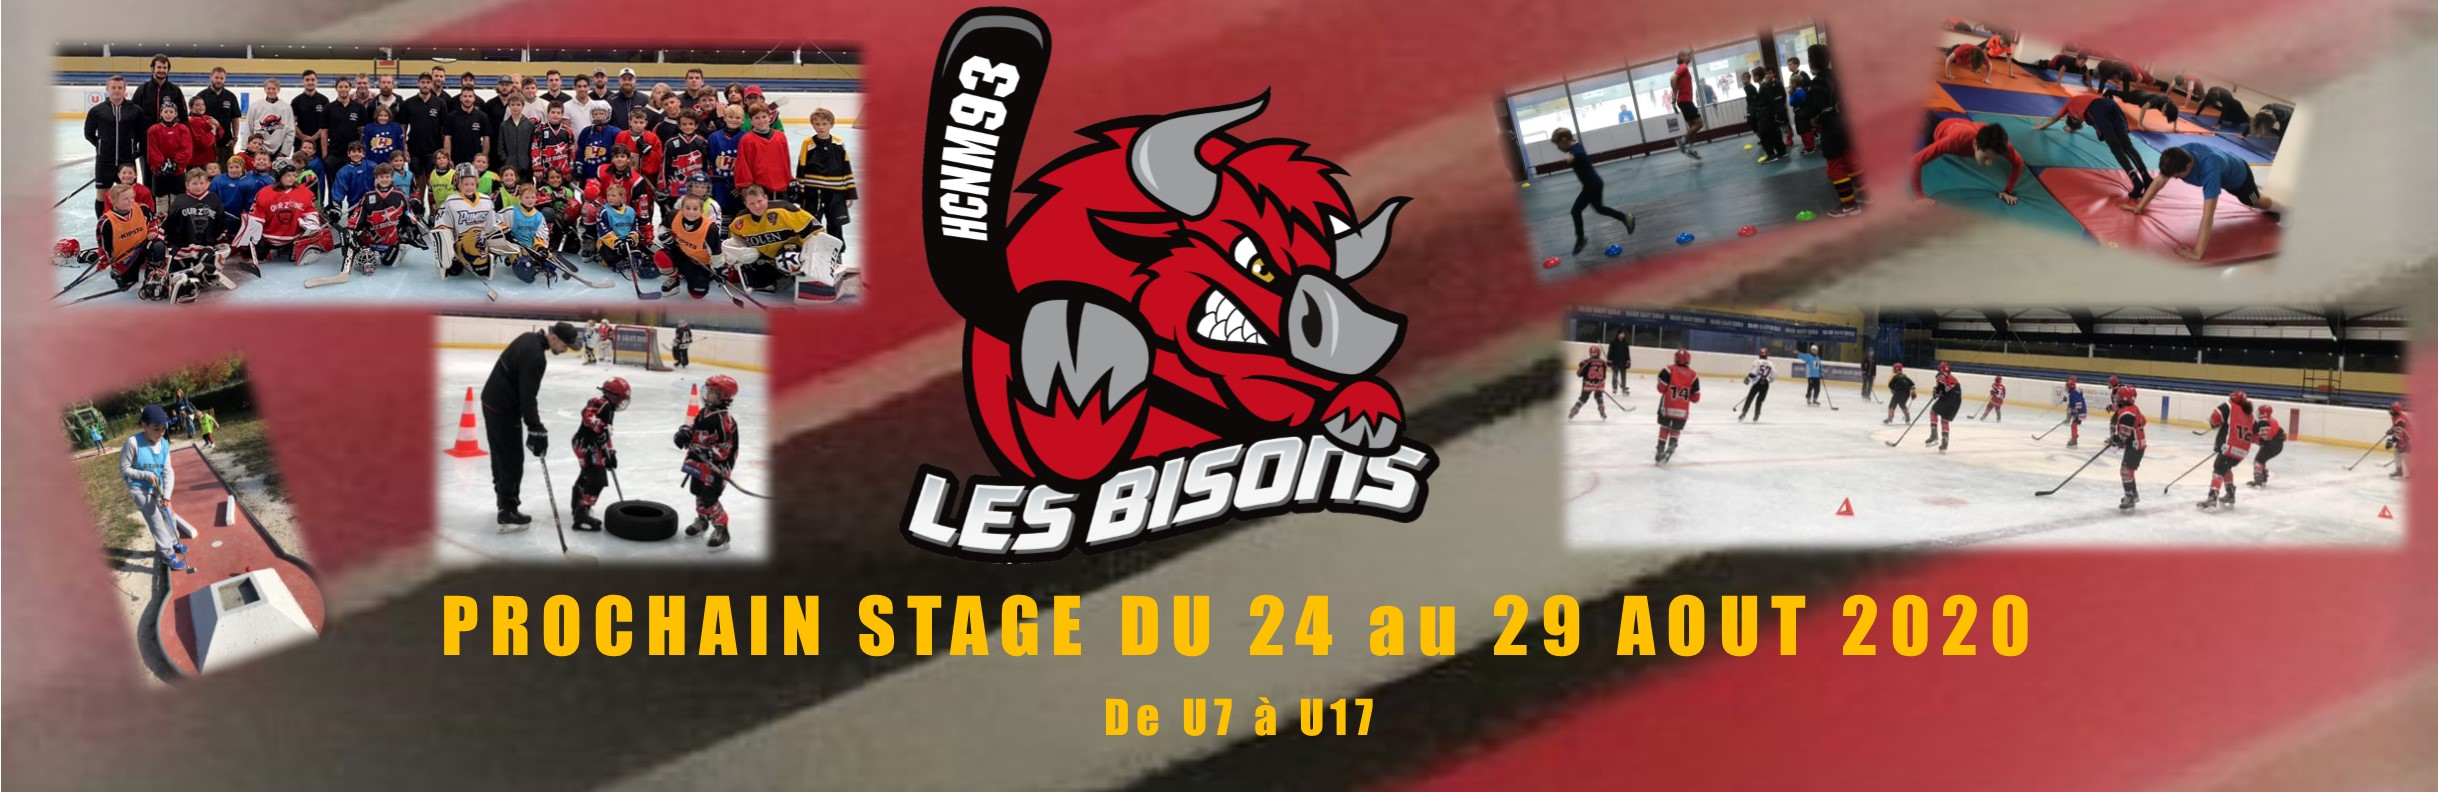 STAGE-banniere-aout-2020